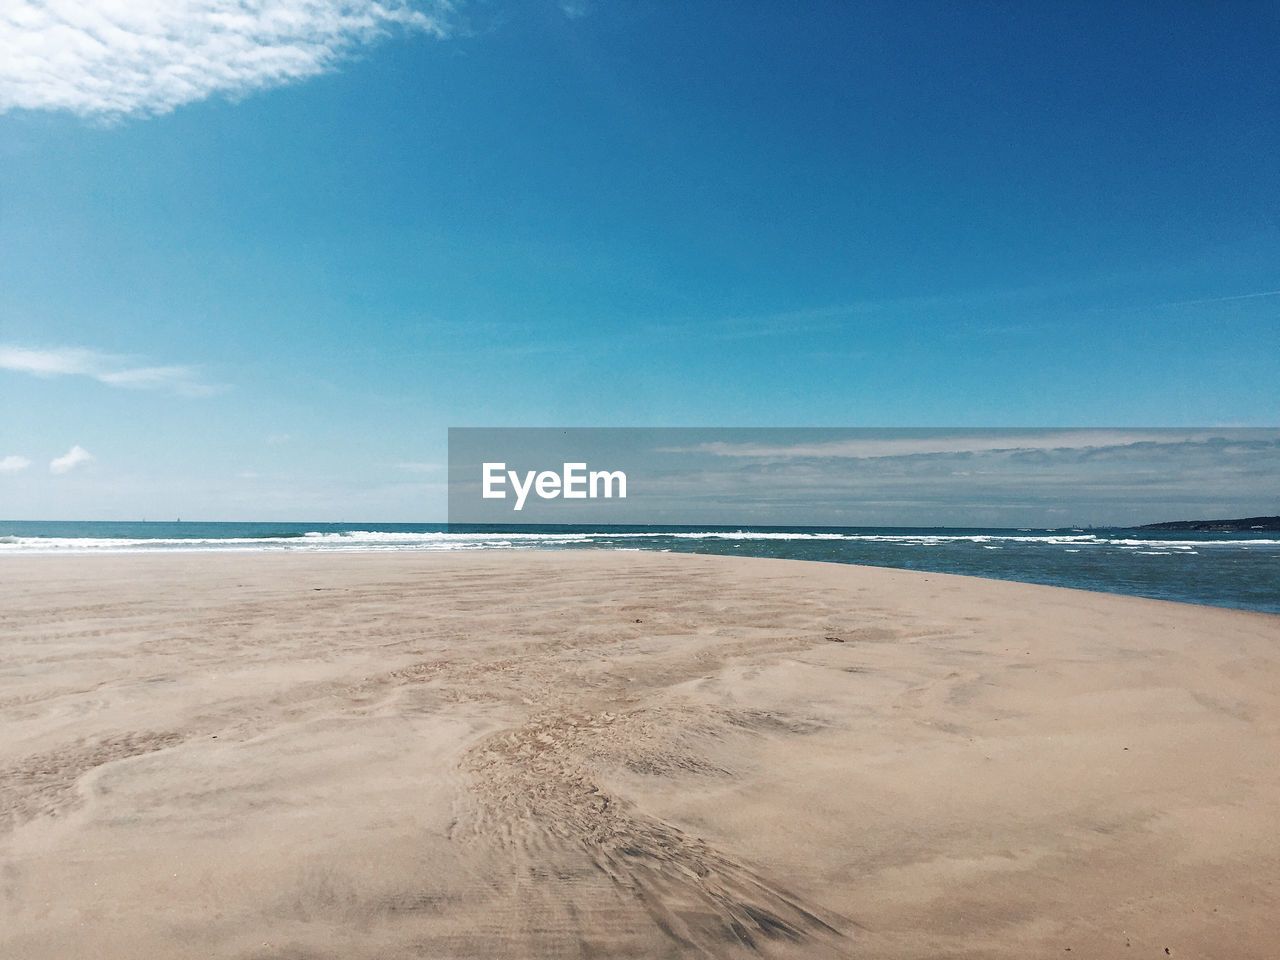 sea, beach, land, sky, water, beauty in nature, scenics - nature, sand, tranquility, tranquil scene, horizon over water, horizon, cloud - sky, nature, blue, day, no people, idyllic, non-urban scene, outdoors